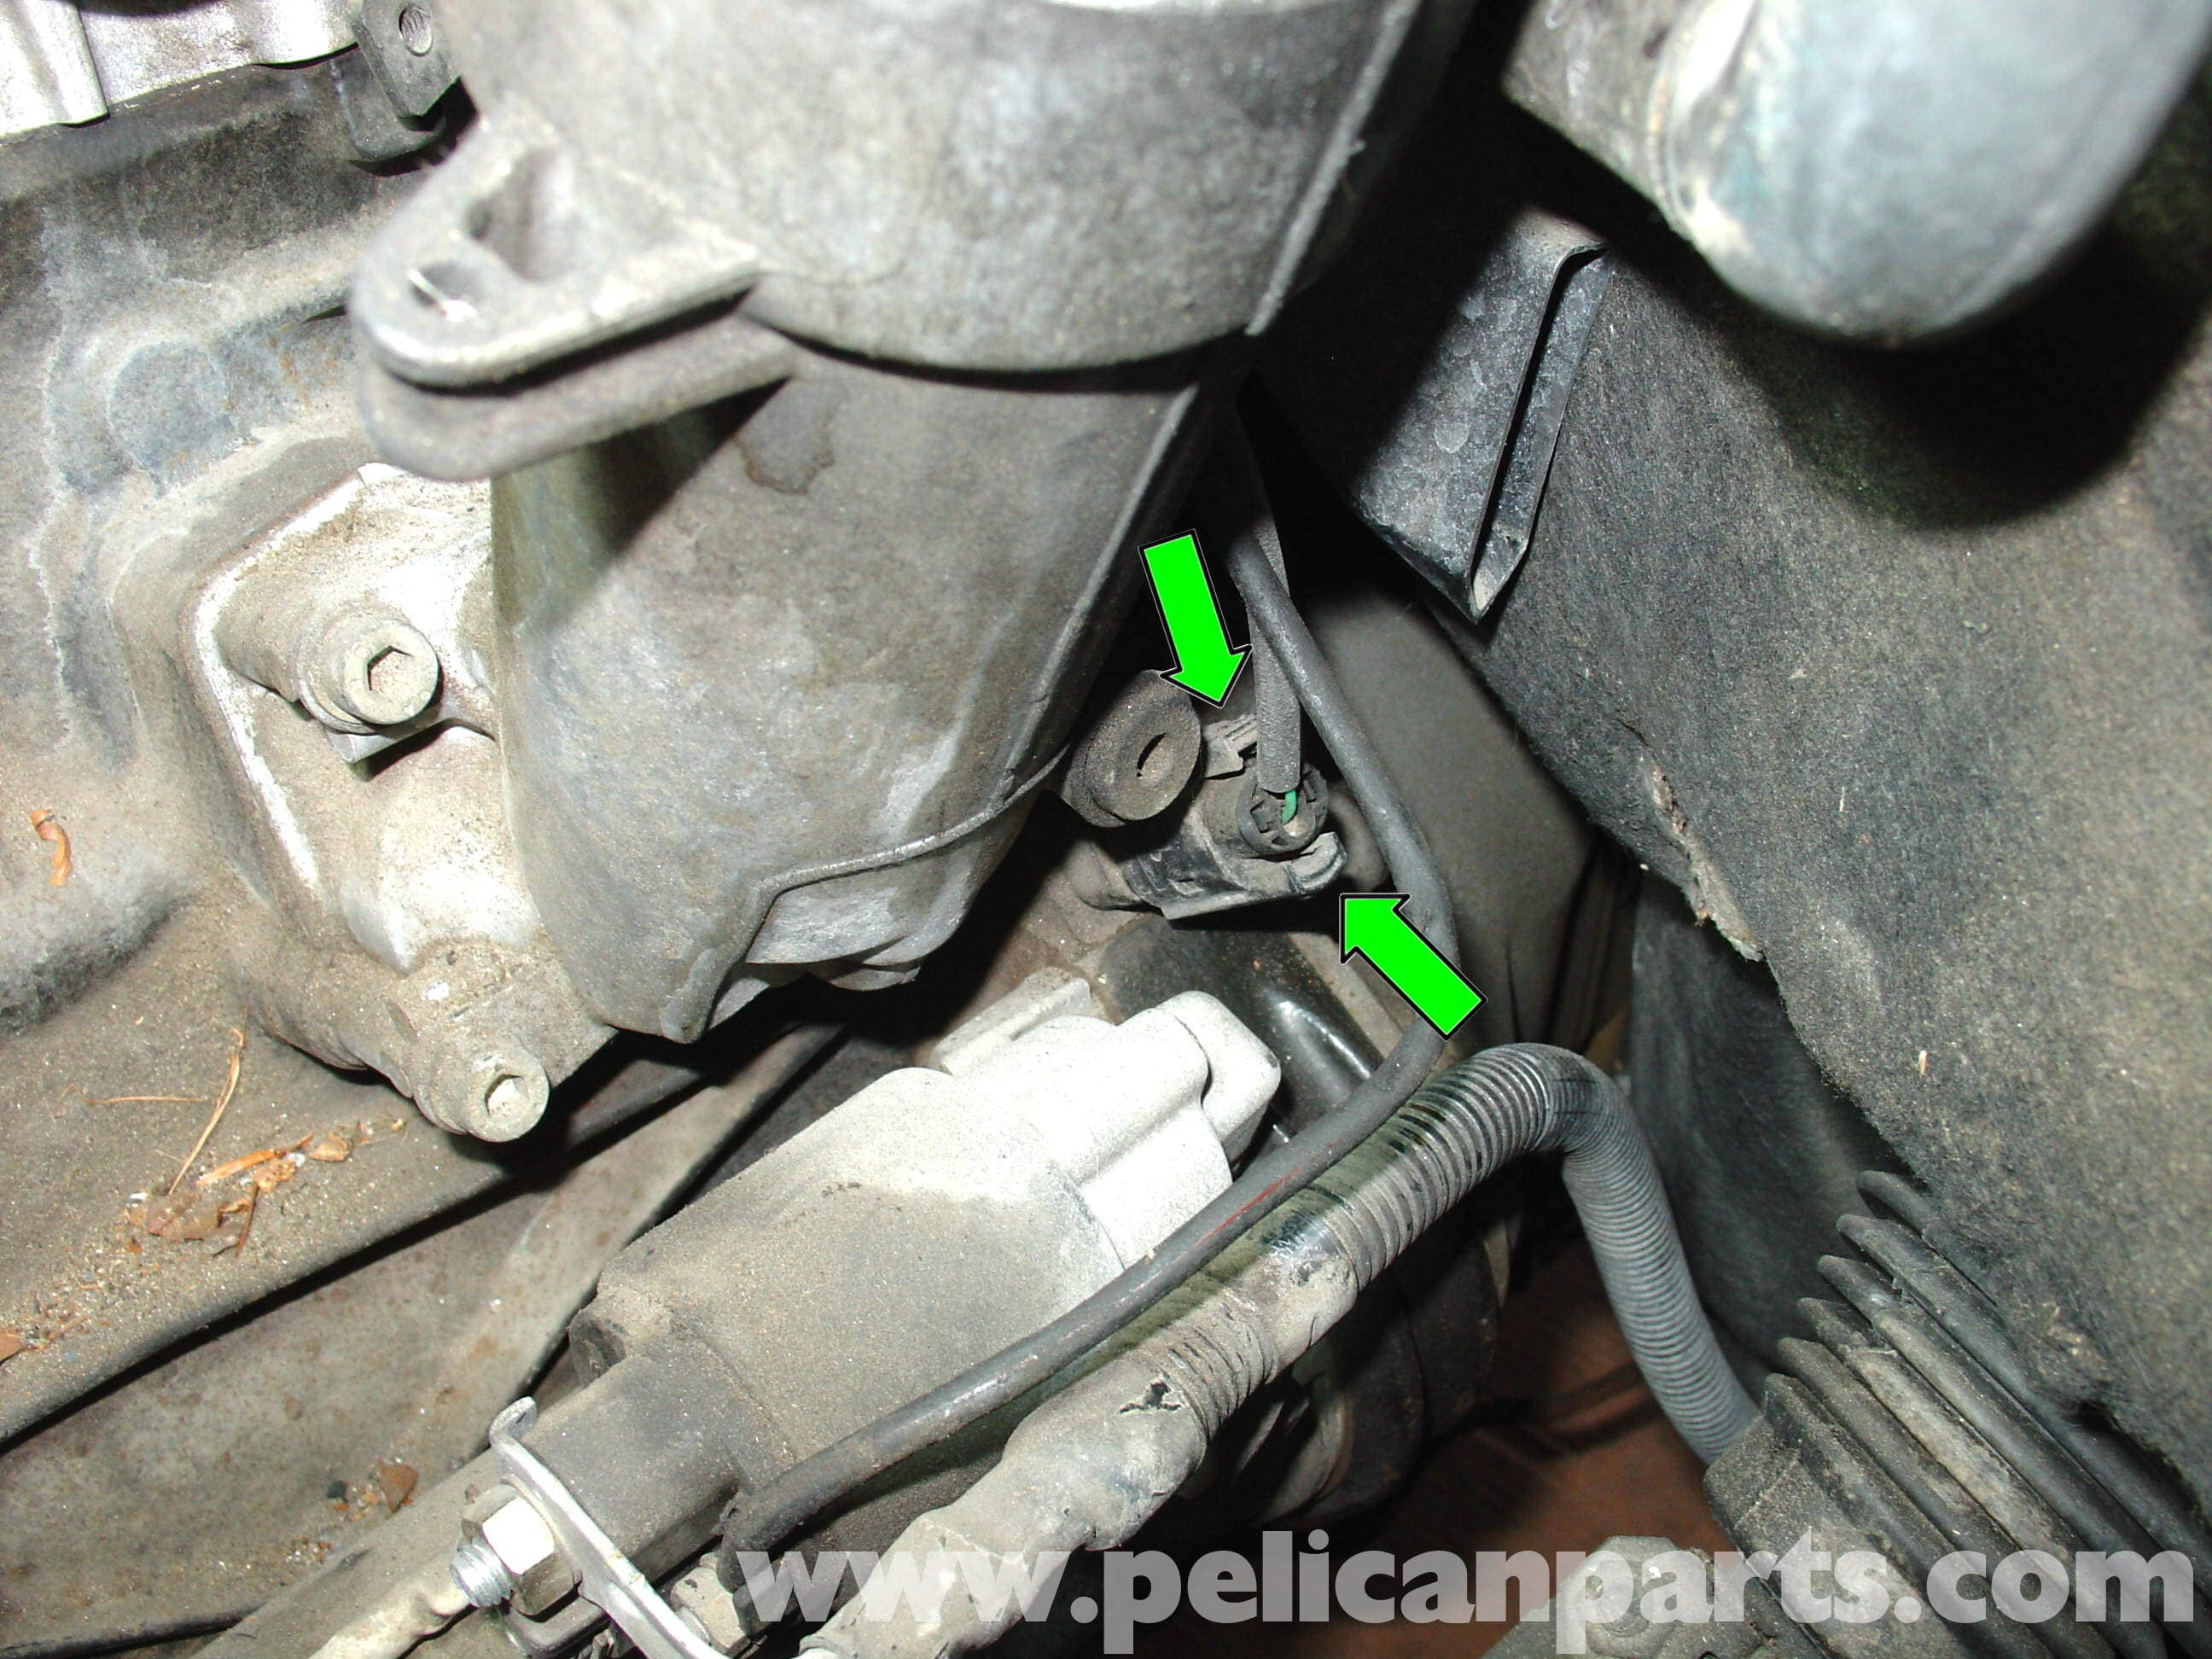 PowerSteering likewise Watch besides 07 ENGINE Crankshaft Position Sensor Replacement besides 521880 Oxygen Sensor O2 Bank 1 Sensor 2 Diy 5 further 2001 Toyota Echo O2 Sensor Location. on 2005 toyota tundra oxygen sensor location